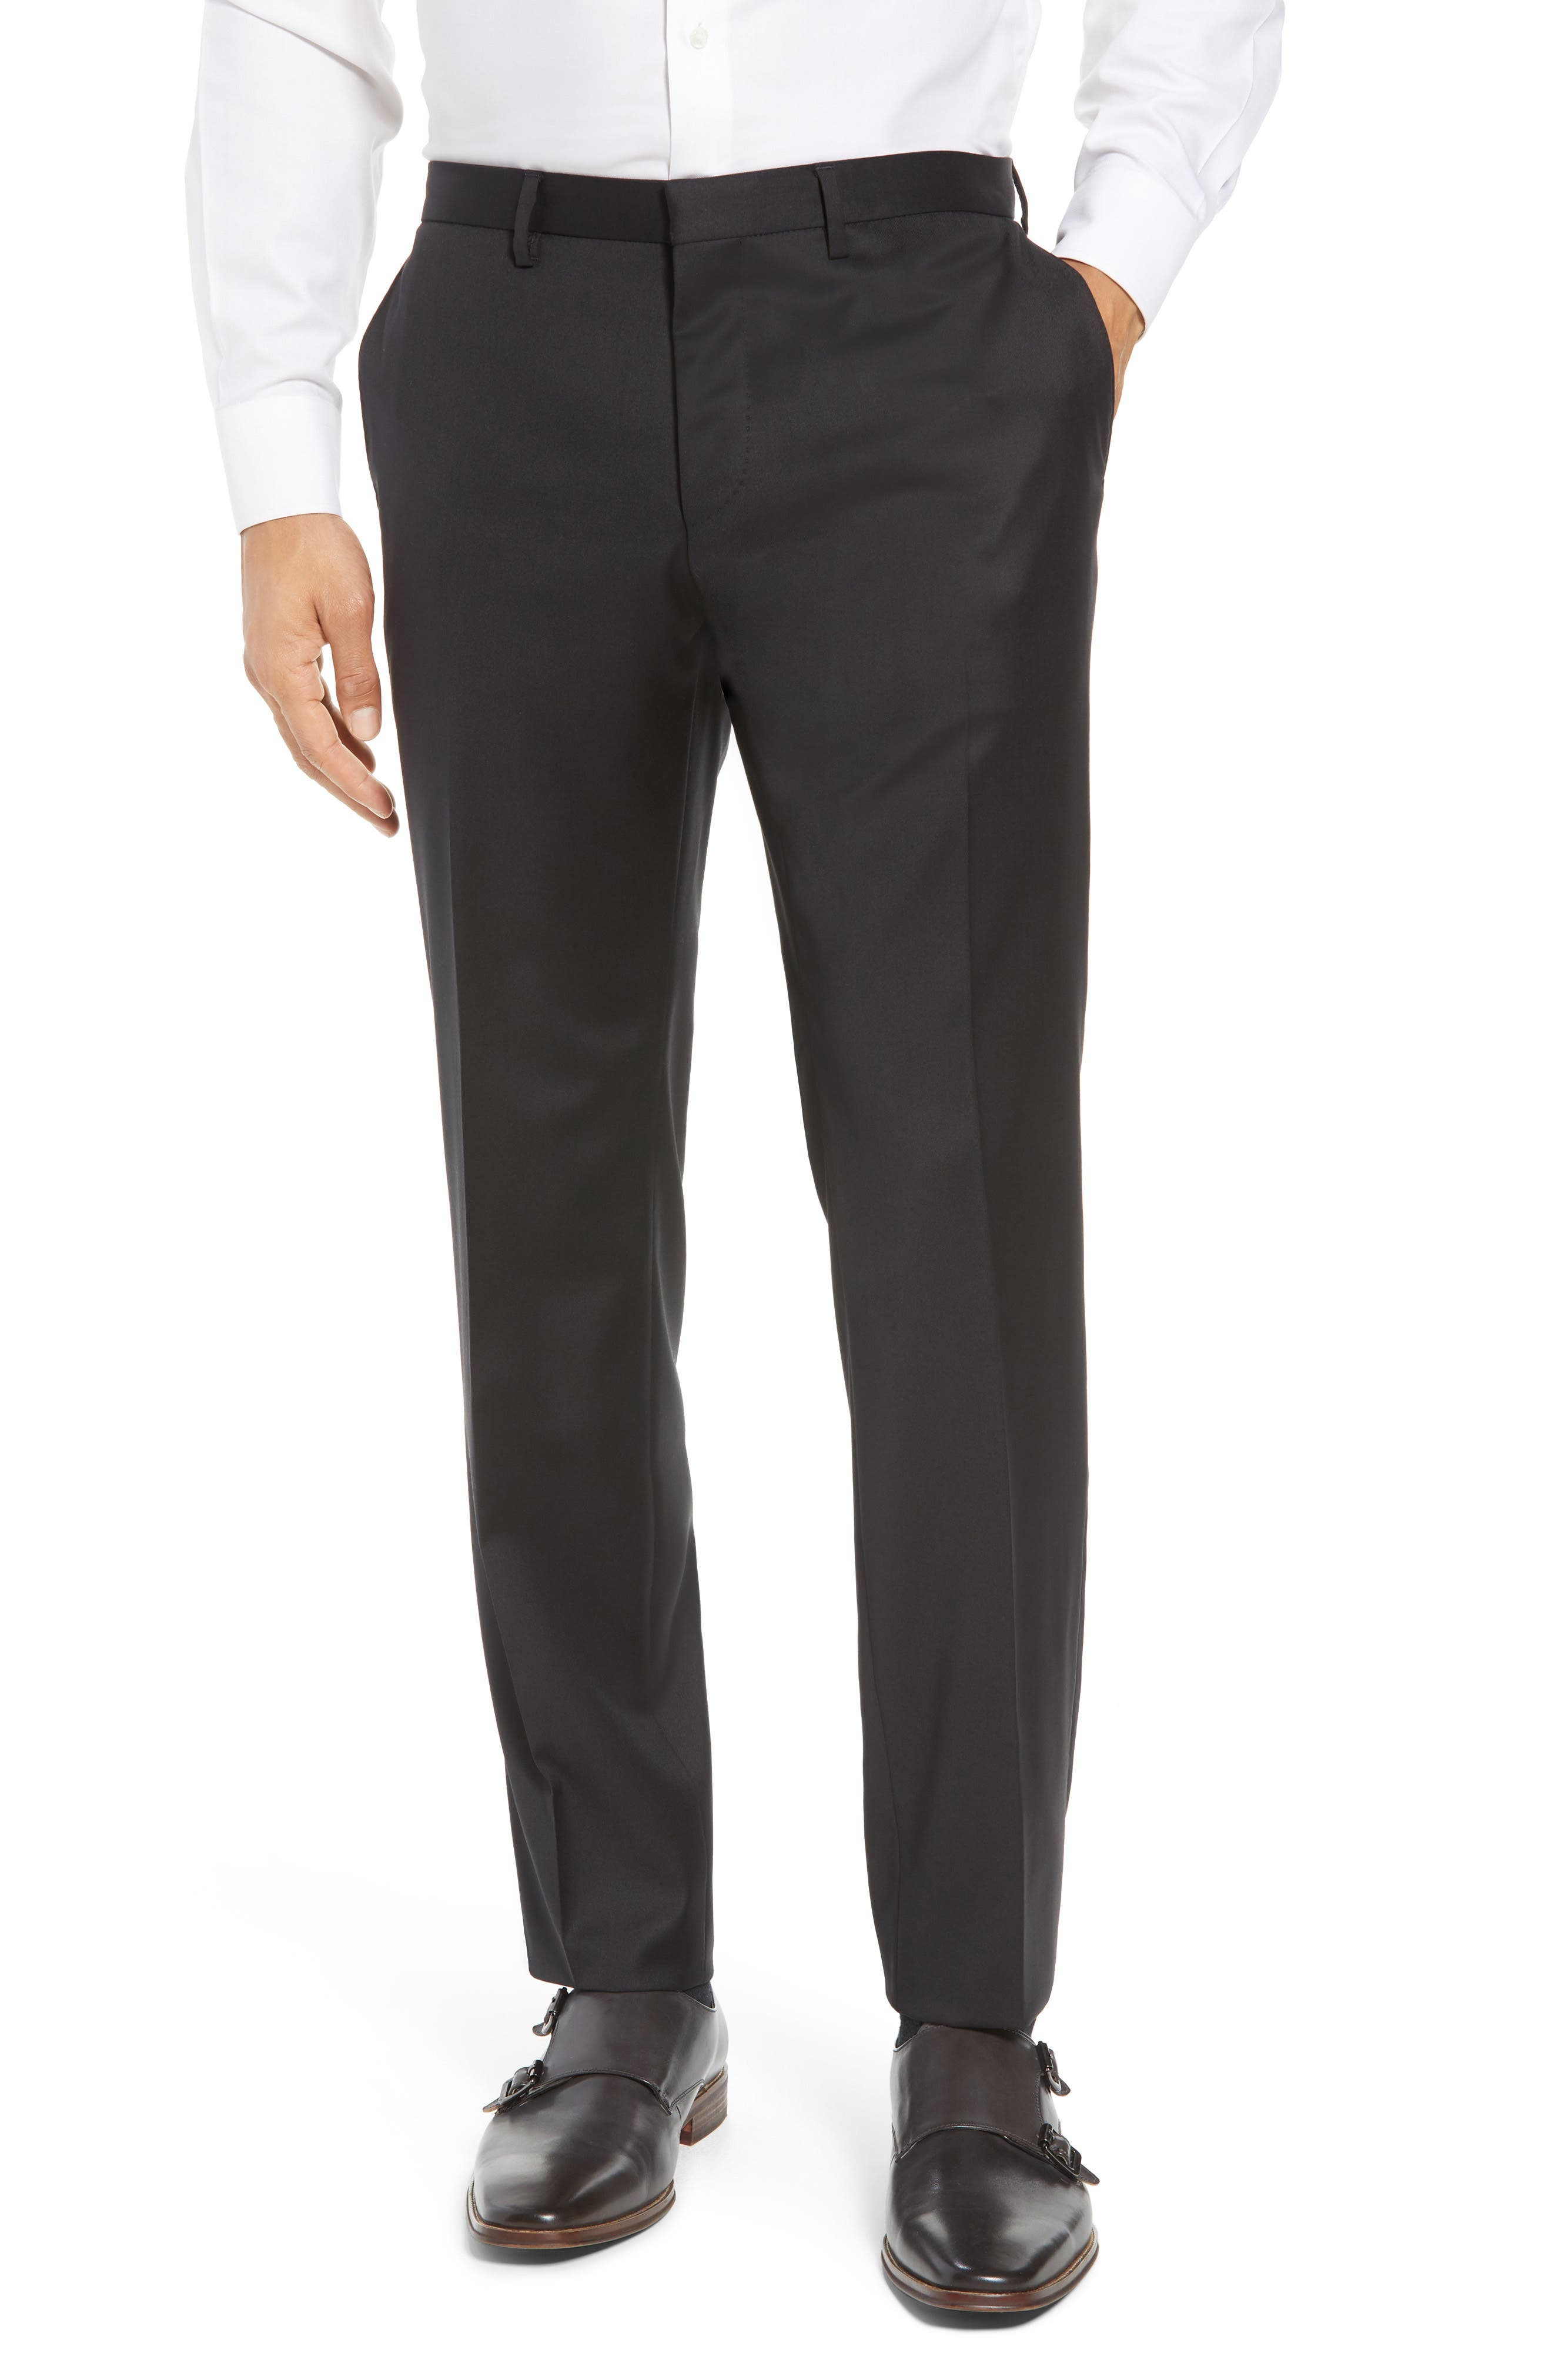 Ryan/Win Extra Trim Fit Solid Wool Suit,                             Alternate thumbnail 9, color,                             BLACK